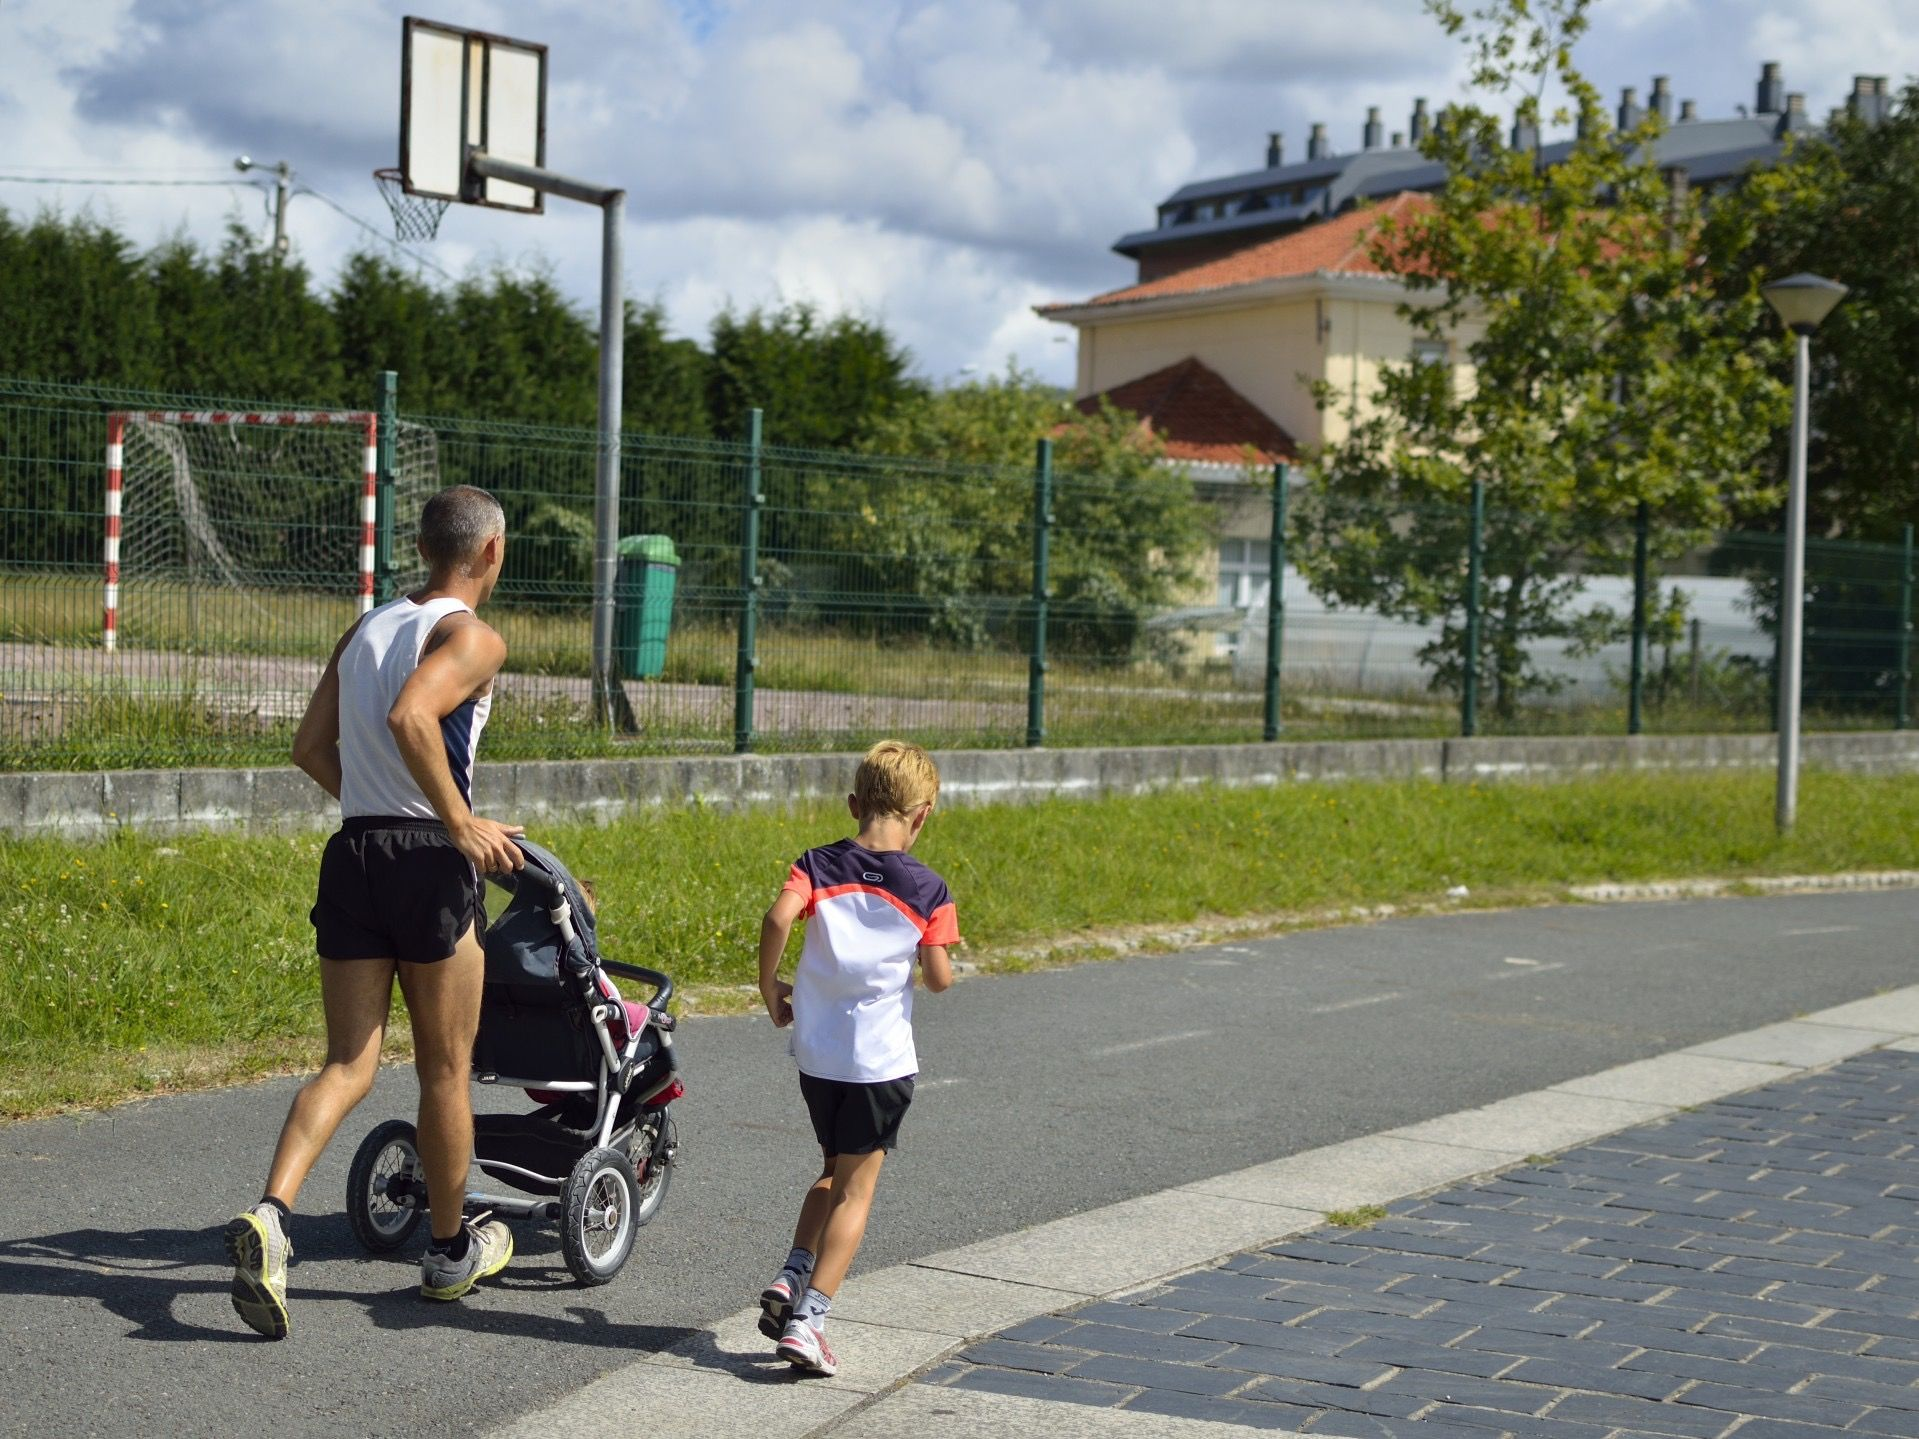 Exercise and outdoor activity is a great way to bond with your family.